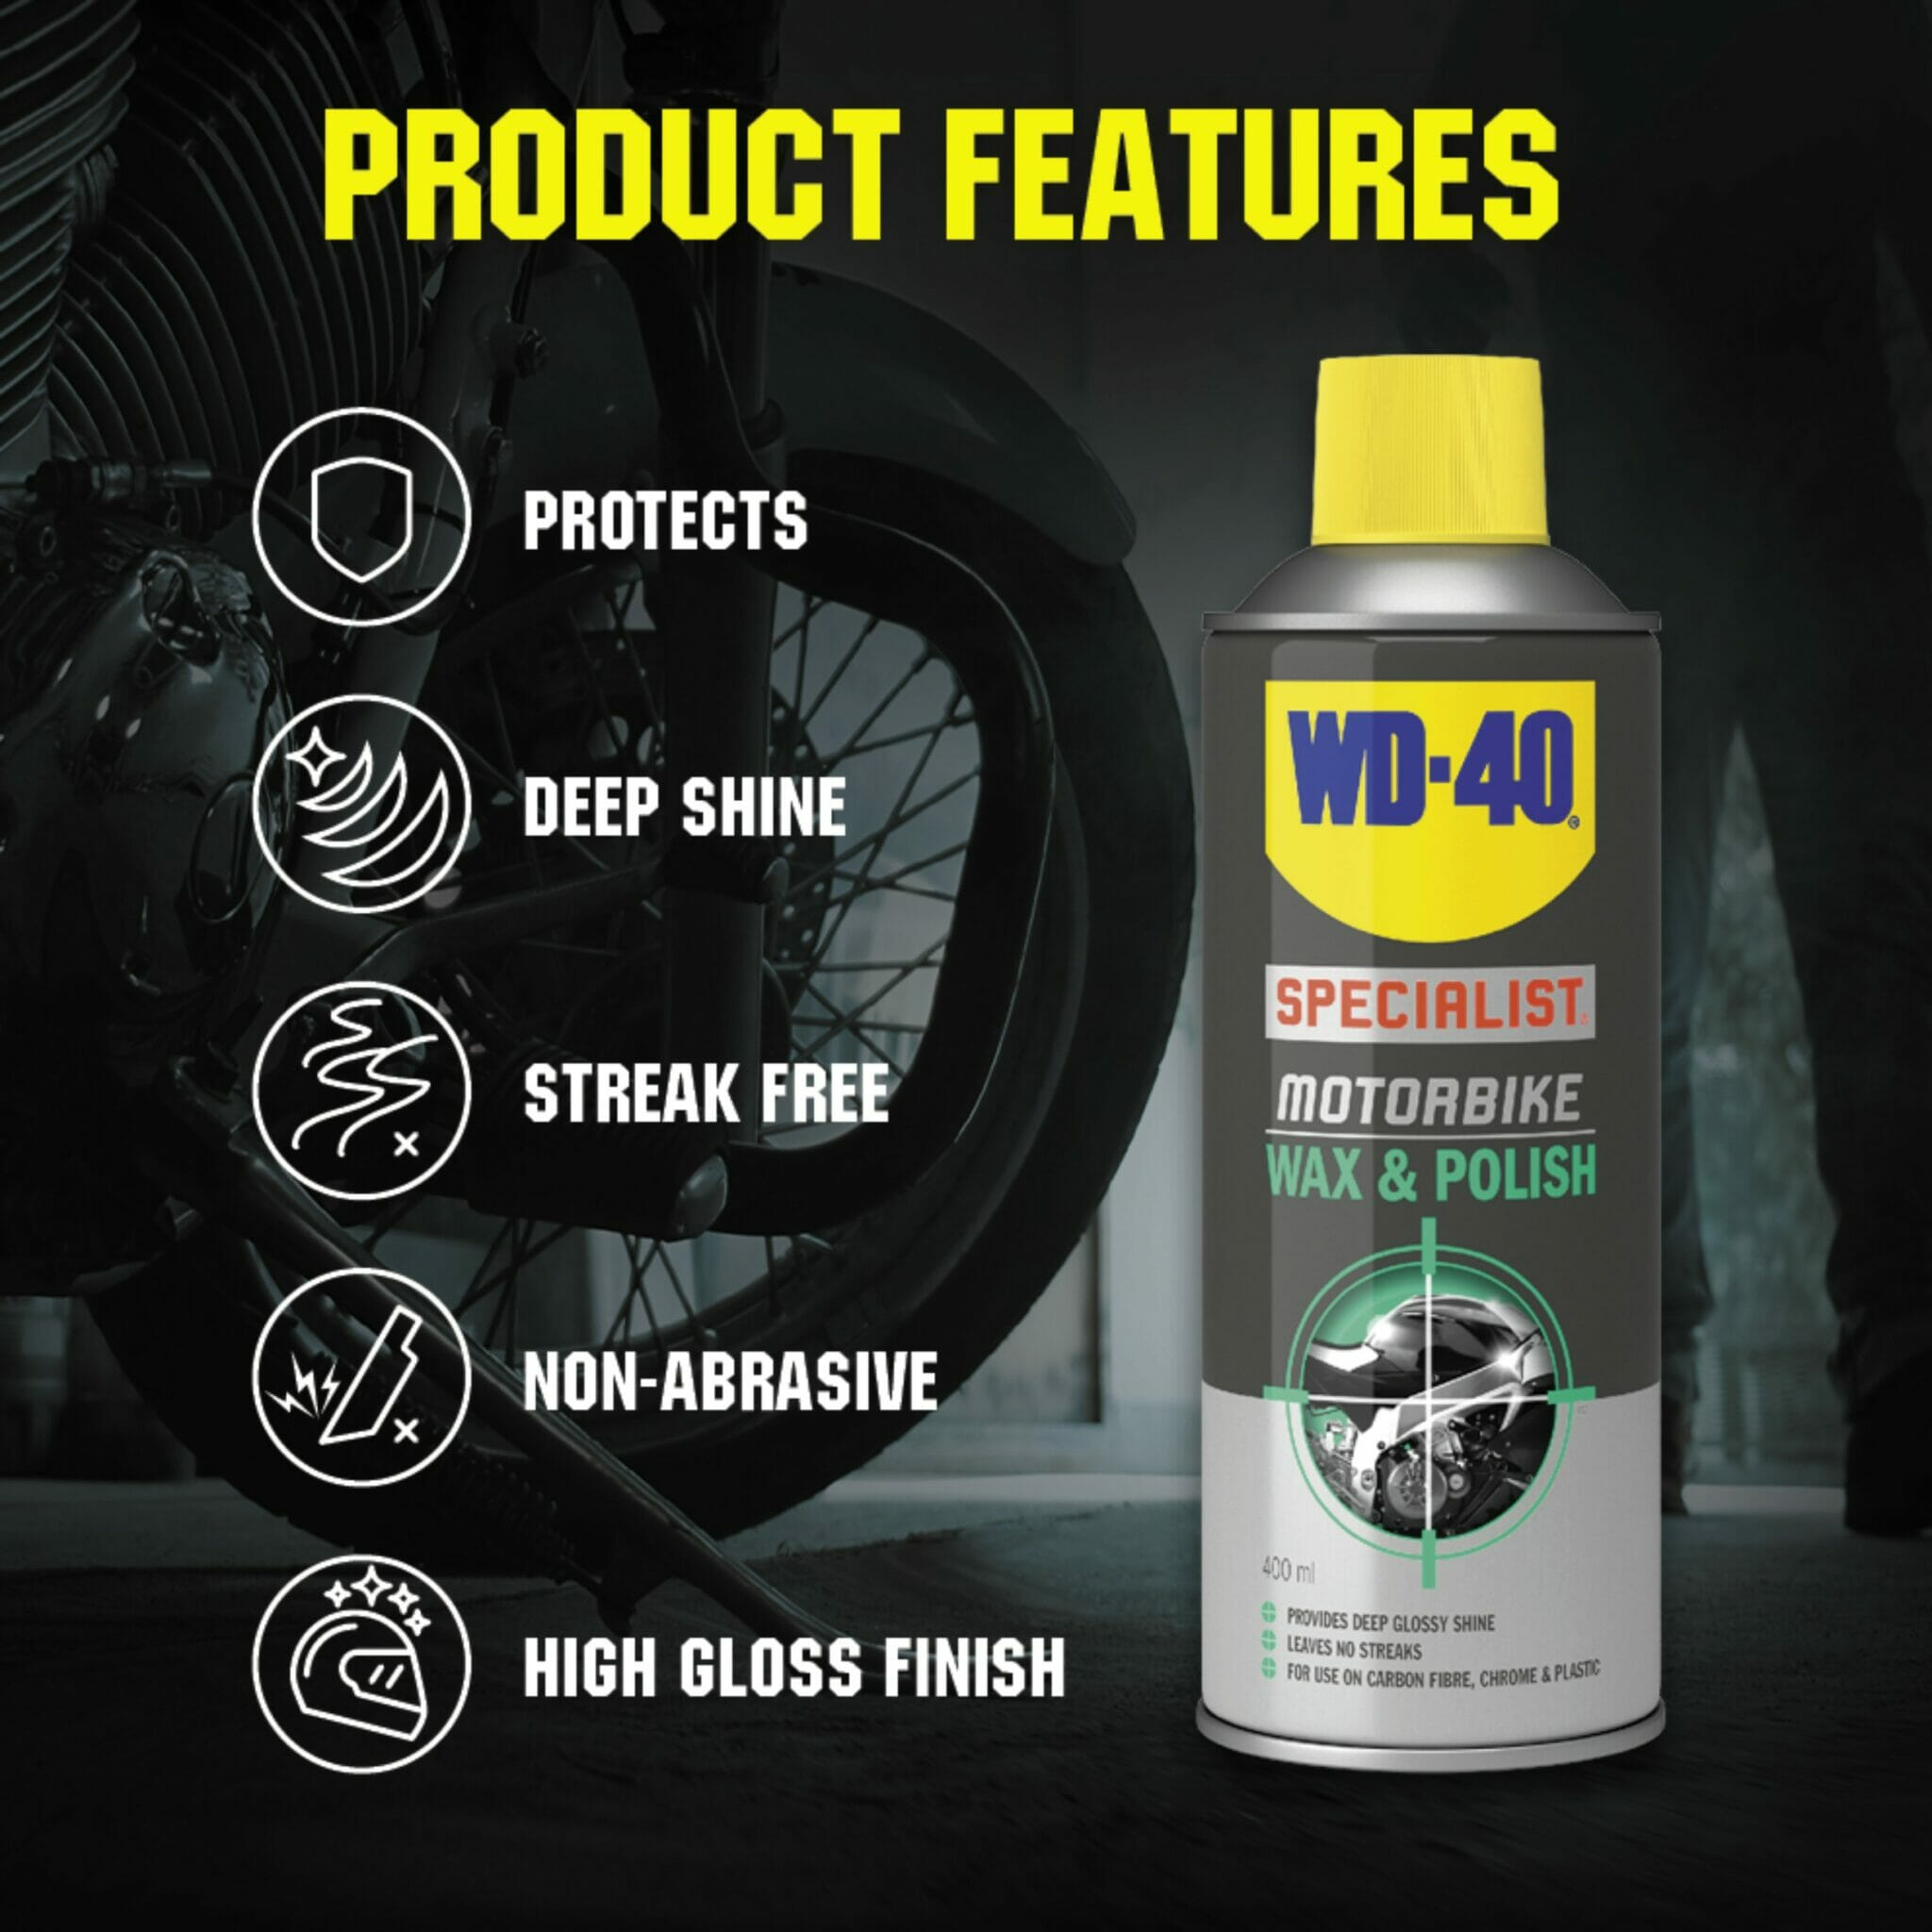 uk wd40 specialist motorbike wax polish 400ml product features lifestyle background